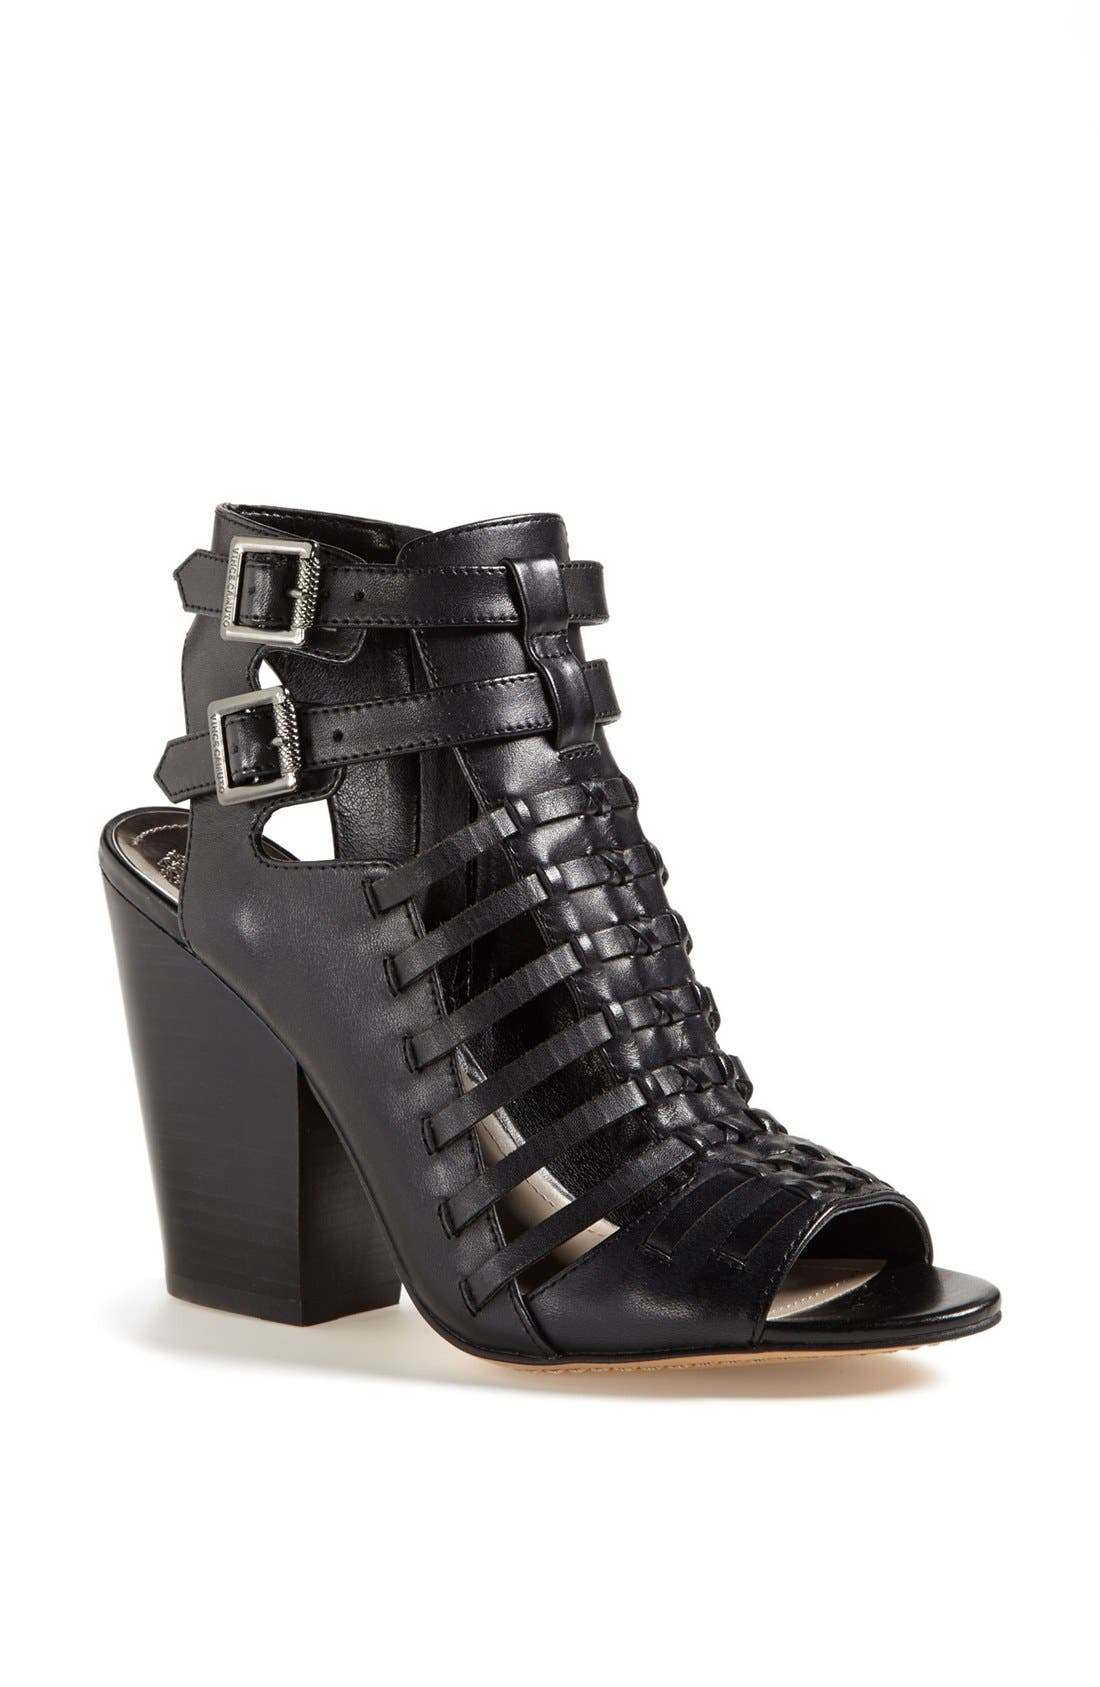 Alternate Image 1 Selected - Vince Camuto 'Medow' Sandal